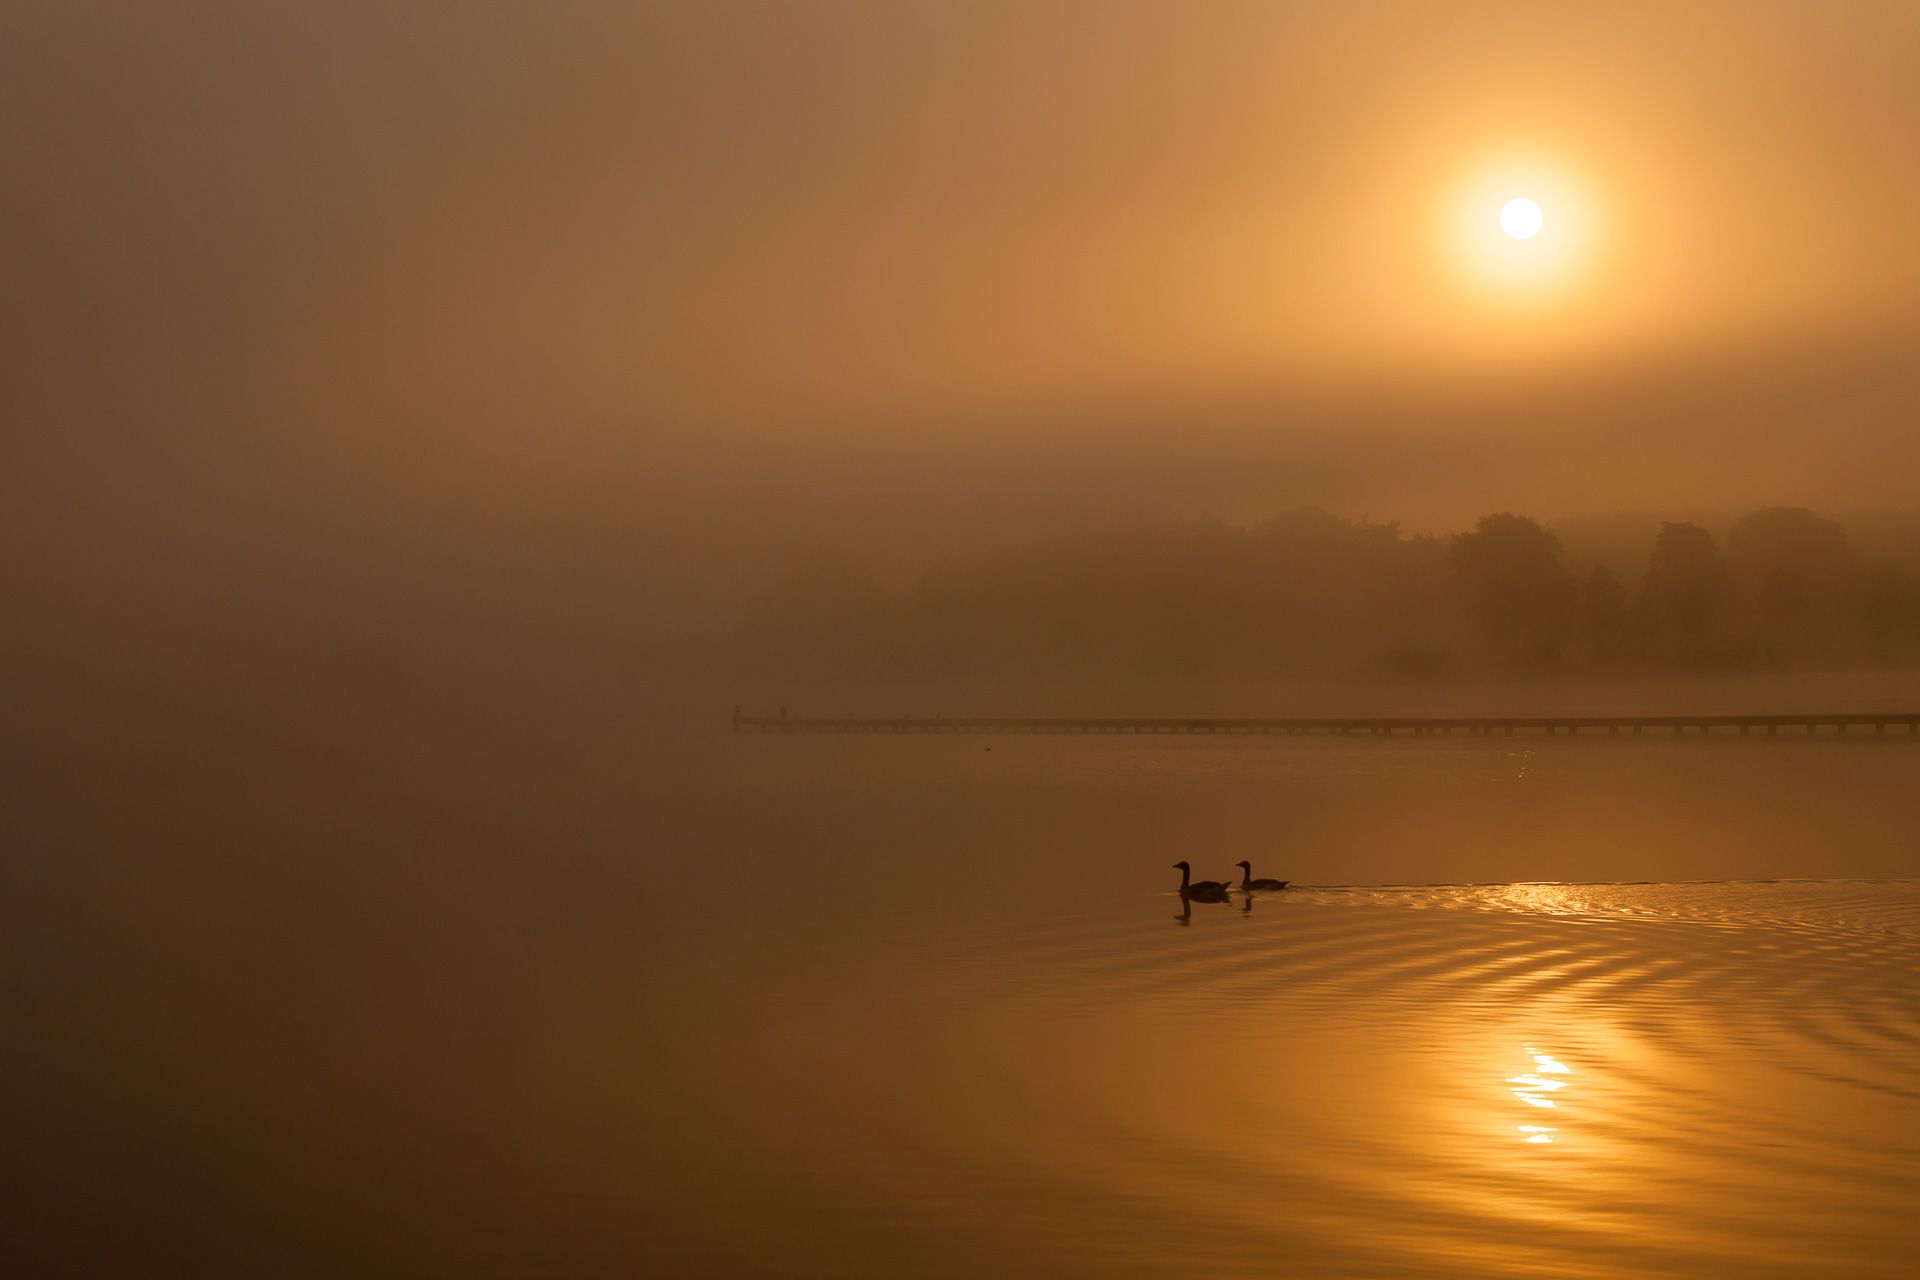 A mystical mood on a calm and tranquil morning at lake Zuidlaardermeer.